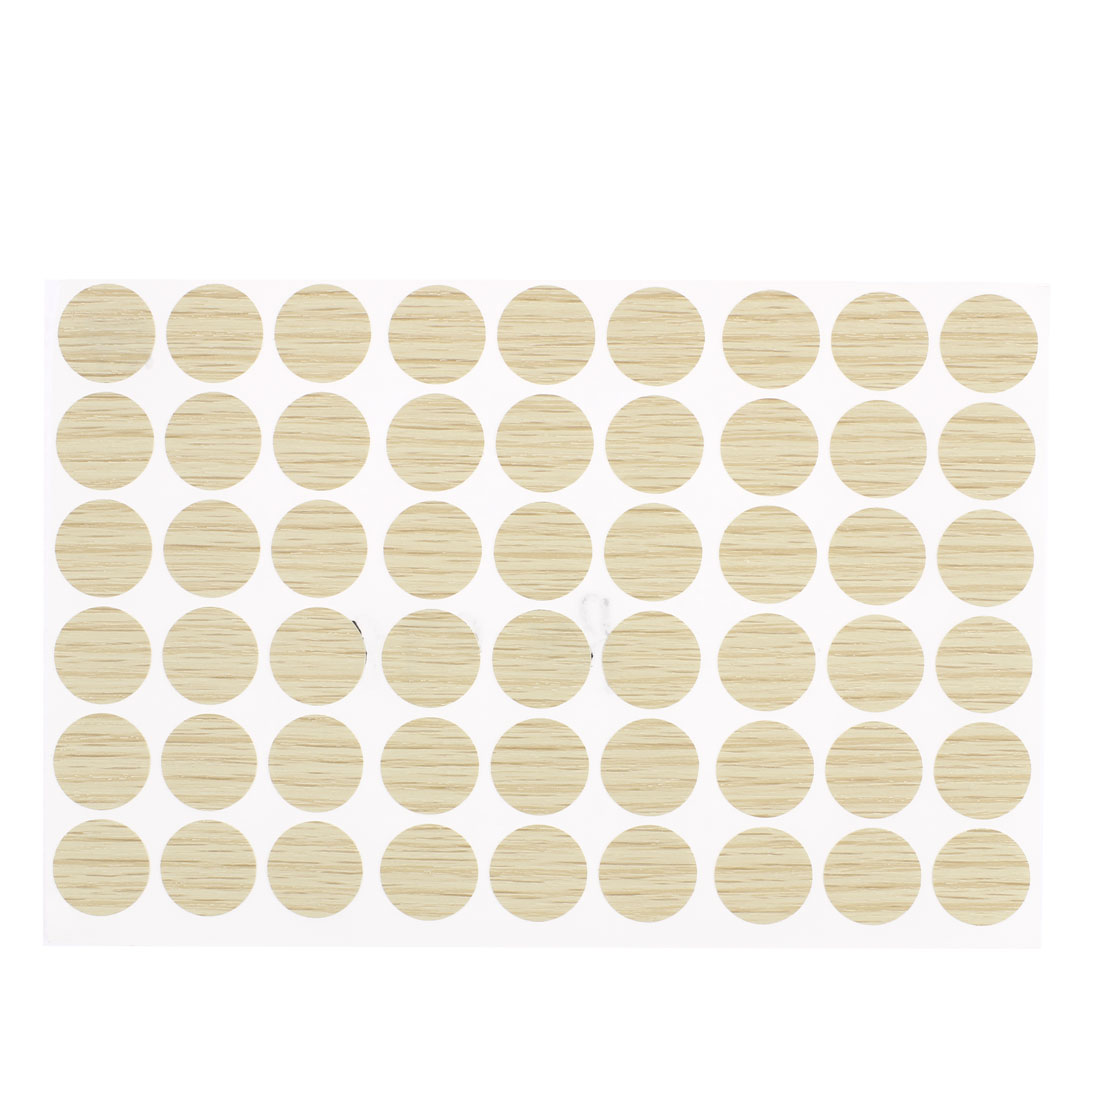 Plastic Self-adhesive Screw Hole Covers Caps Stickers Beige 54 in 1 for 21mm Dia